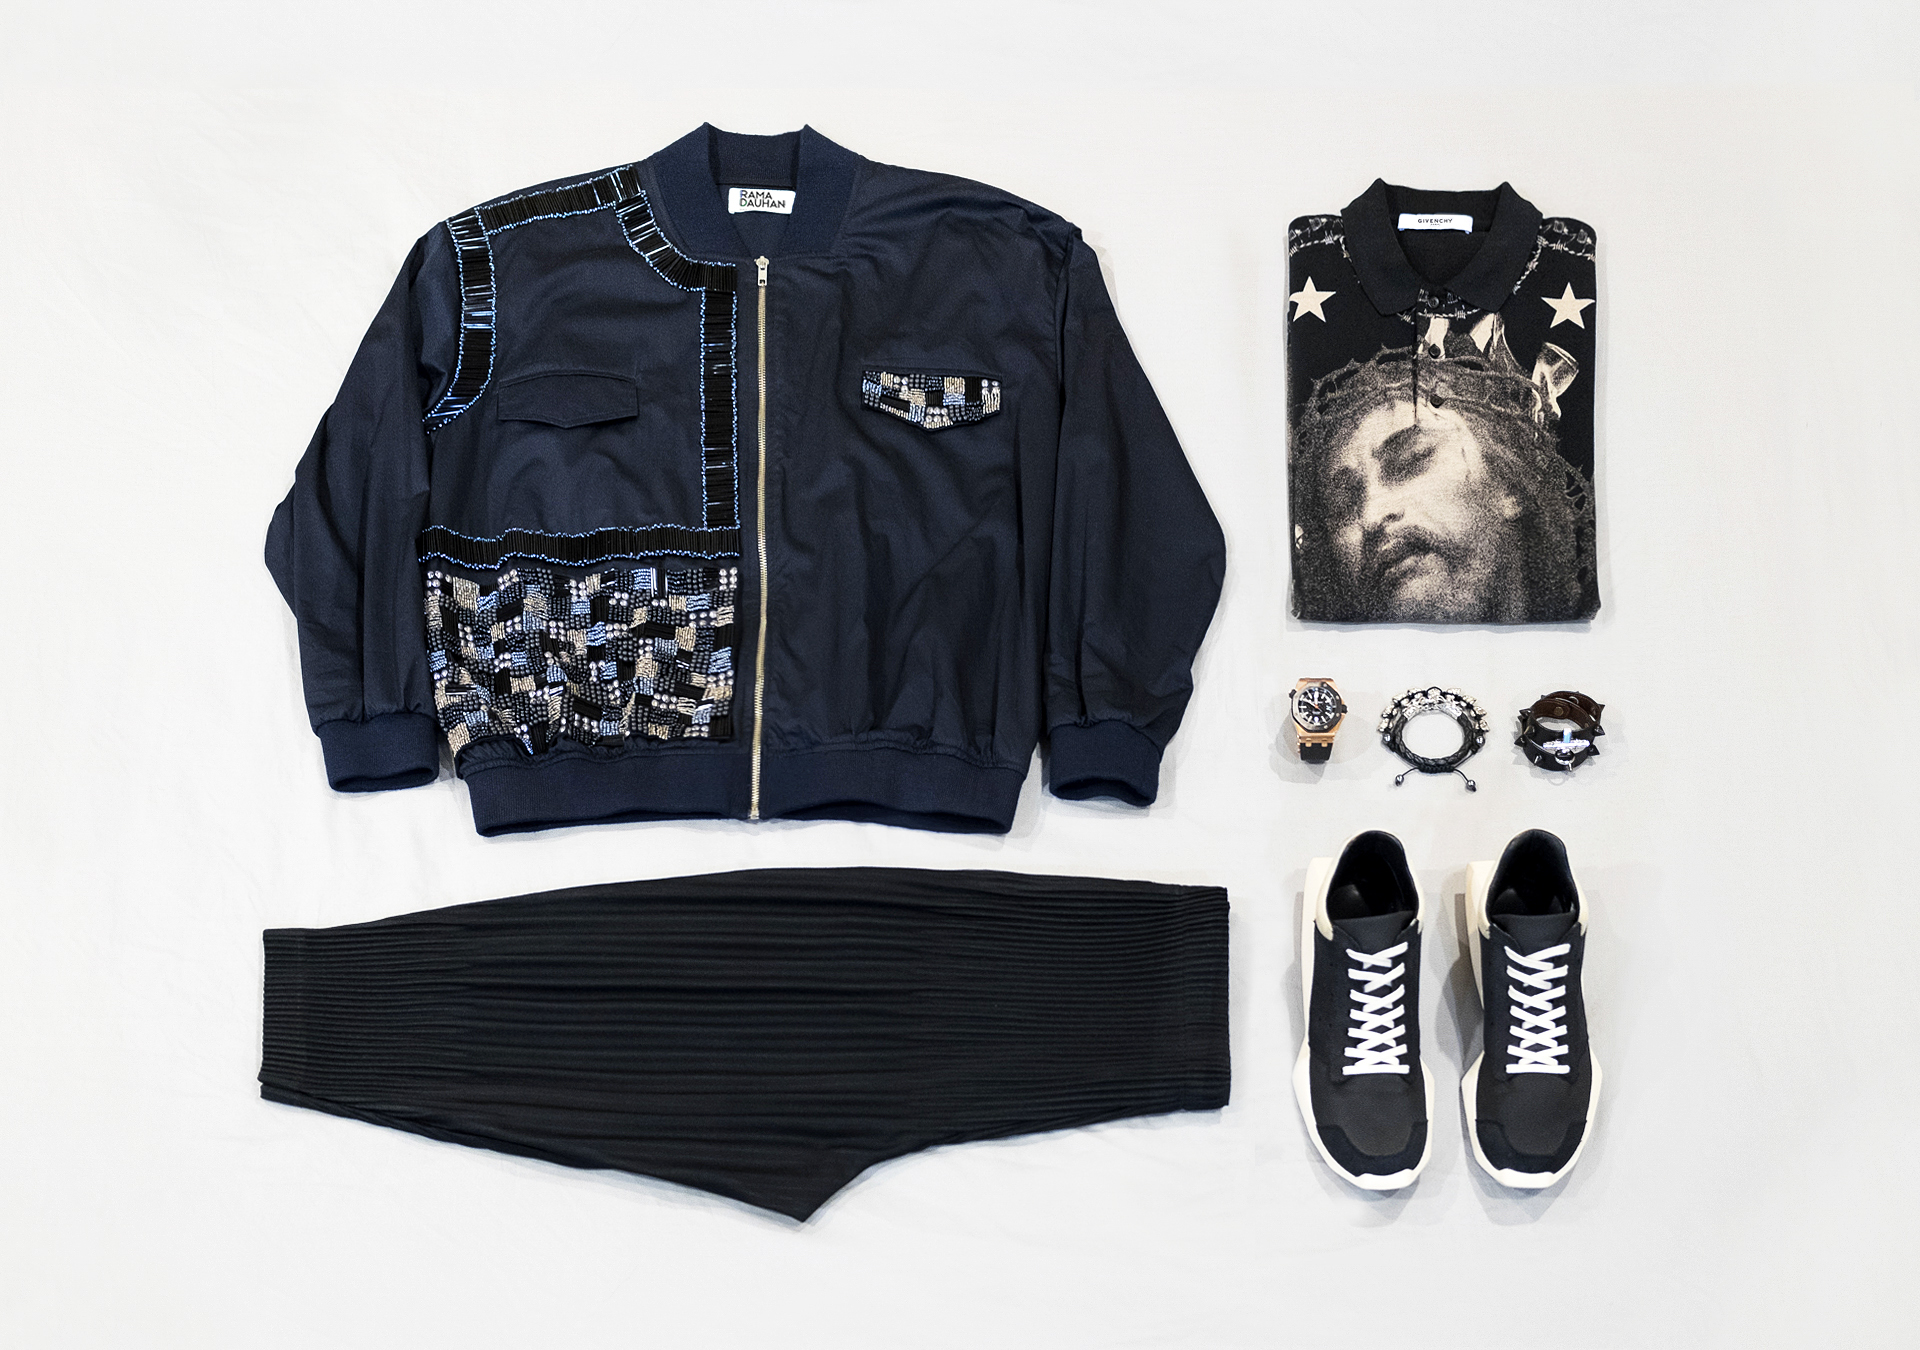 Rama Dauhan Sensatia Sequin Embellished Bomber Jacket and Givenchy Jesus Polo Shirt and Homme Plisse Pleated Shorts